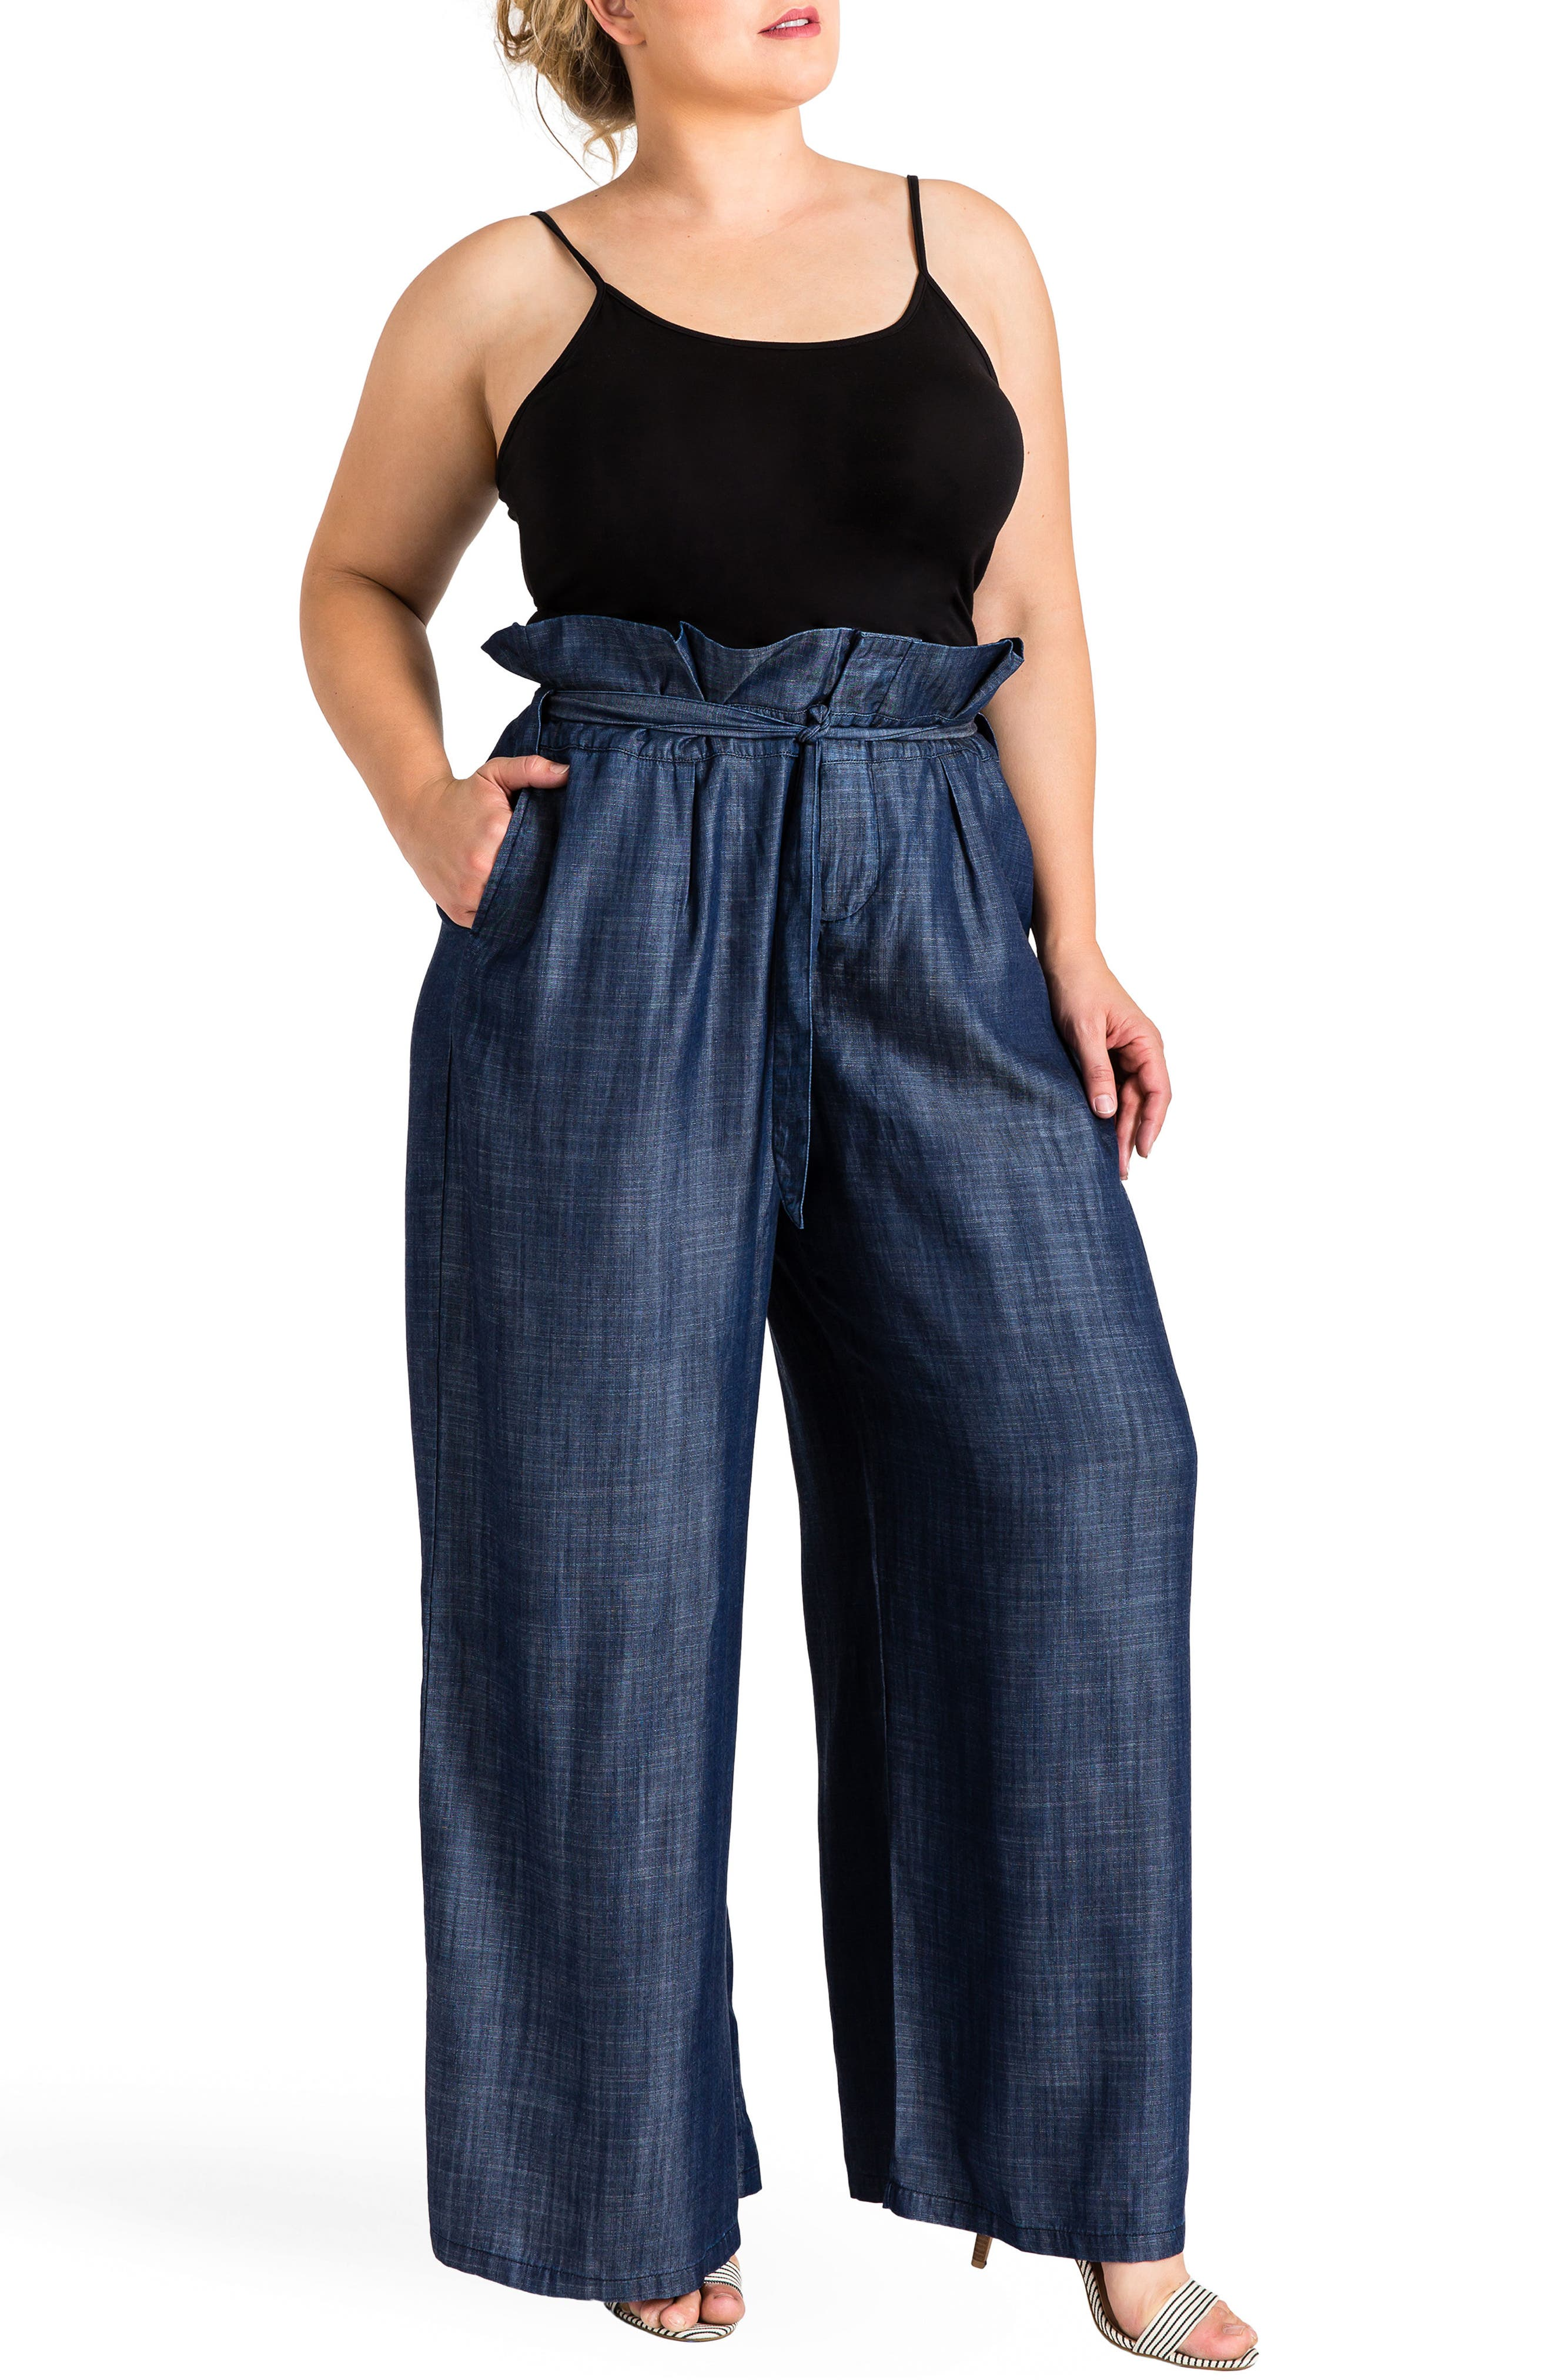 STANDARDS & PRACTICES, Cleo Wide Leg Pants, Alternate thumbnail 4, color, DARK BLUE